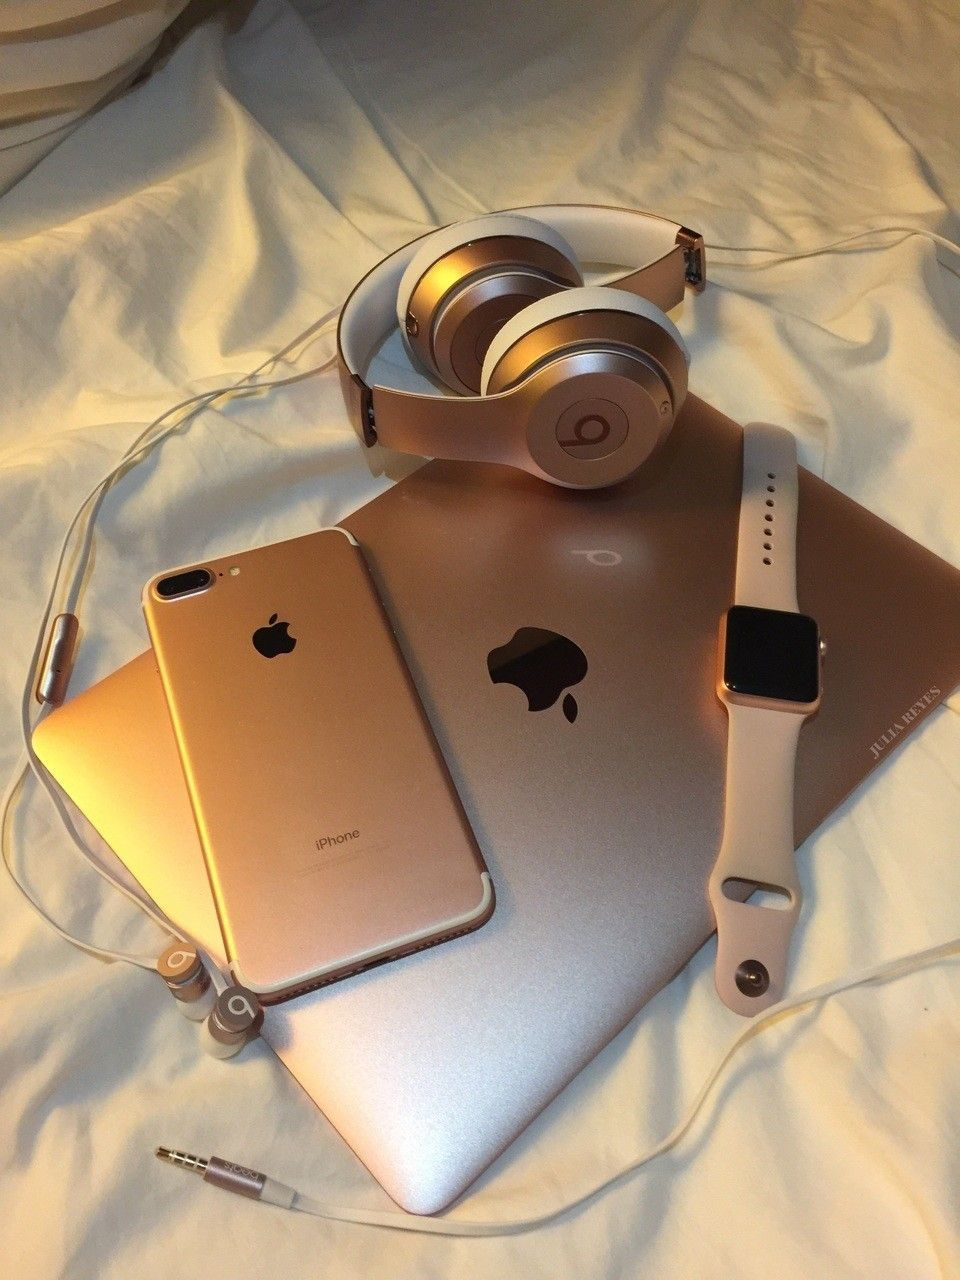 Iphone Beats Macbook Watch Just Apple With Images Apple Products Apple Laptop Macbook Electronics Apple